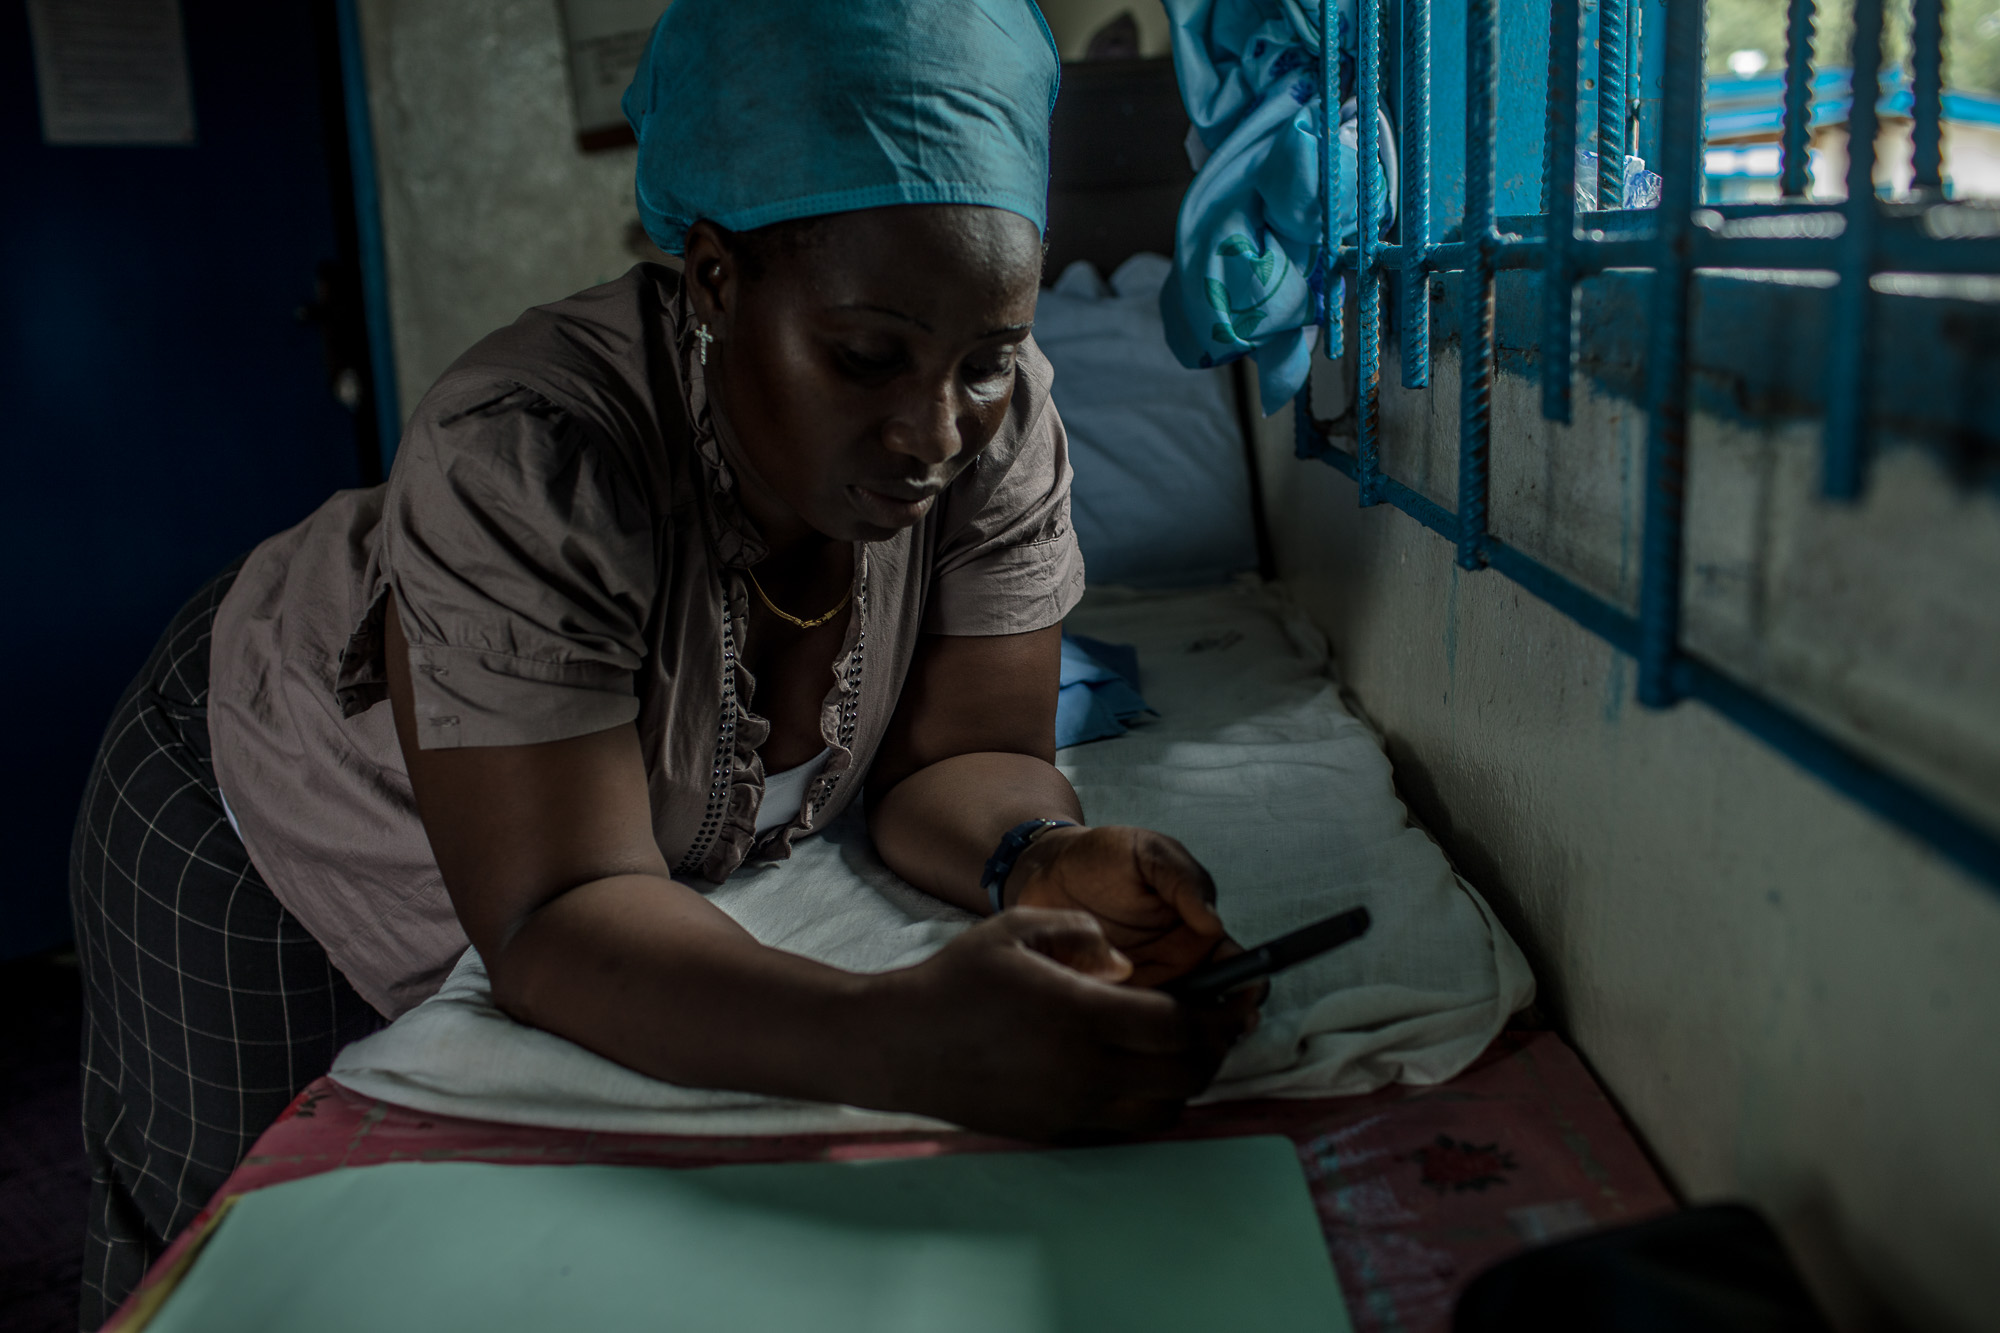 BREWERVILLE, LIBERIA: August 22, 2017 - Wislyne S. Yarh Sieh is a registered nurse at Kpallah Community Clinic in Browerville—just outside of Monrovia, Liberia. She was a healthcare worker during the Ebola outbreak in 2014-2015. During that time there was no centralized system for the Ministry of Health to communicate to all healthcare workers across the country at the same time. UNICEF and USAID teamed up to create a platform that utilized mobile phones to facilitate a two way communication system between healthcare workers and the centralized ministry. Now Wislyne receives text messages on her phone with vital information when there is a health emergency. She can also use her phone to send important information like the status of supply stocks in the clinic. Photo by Morgana Wingard